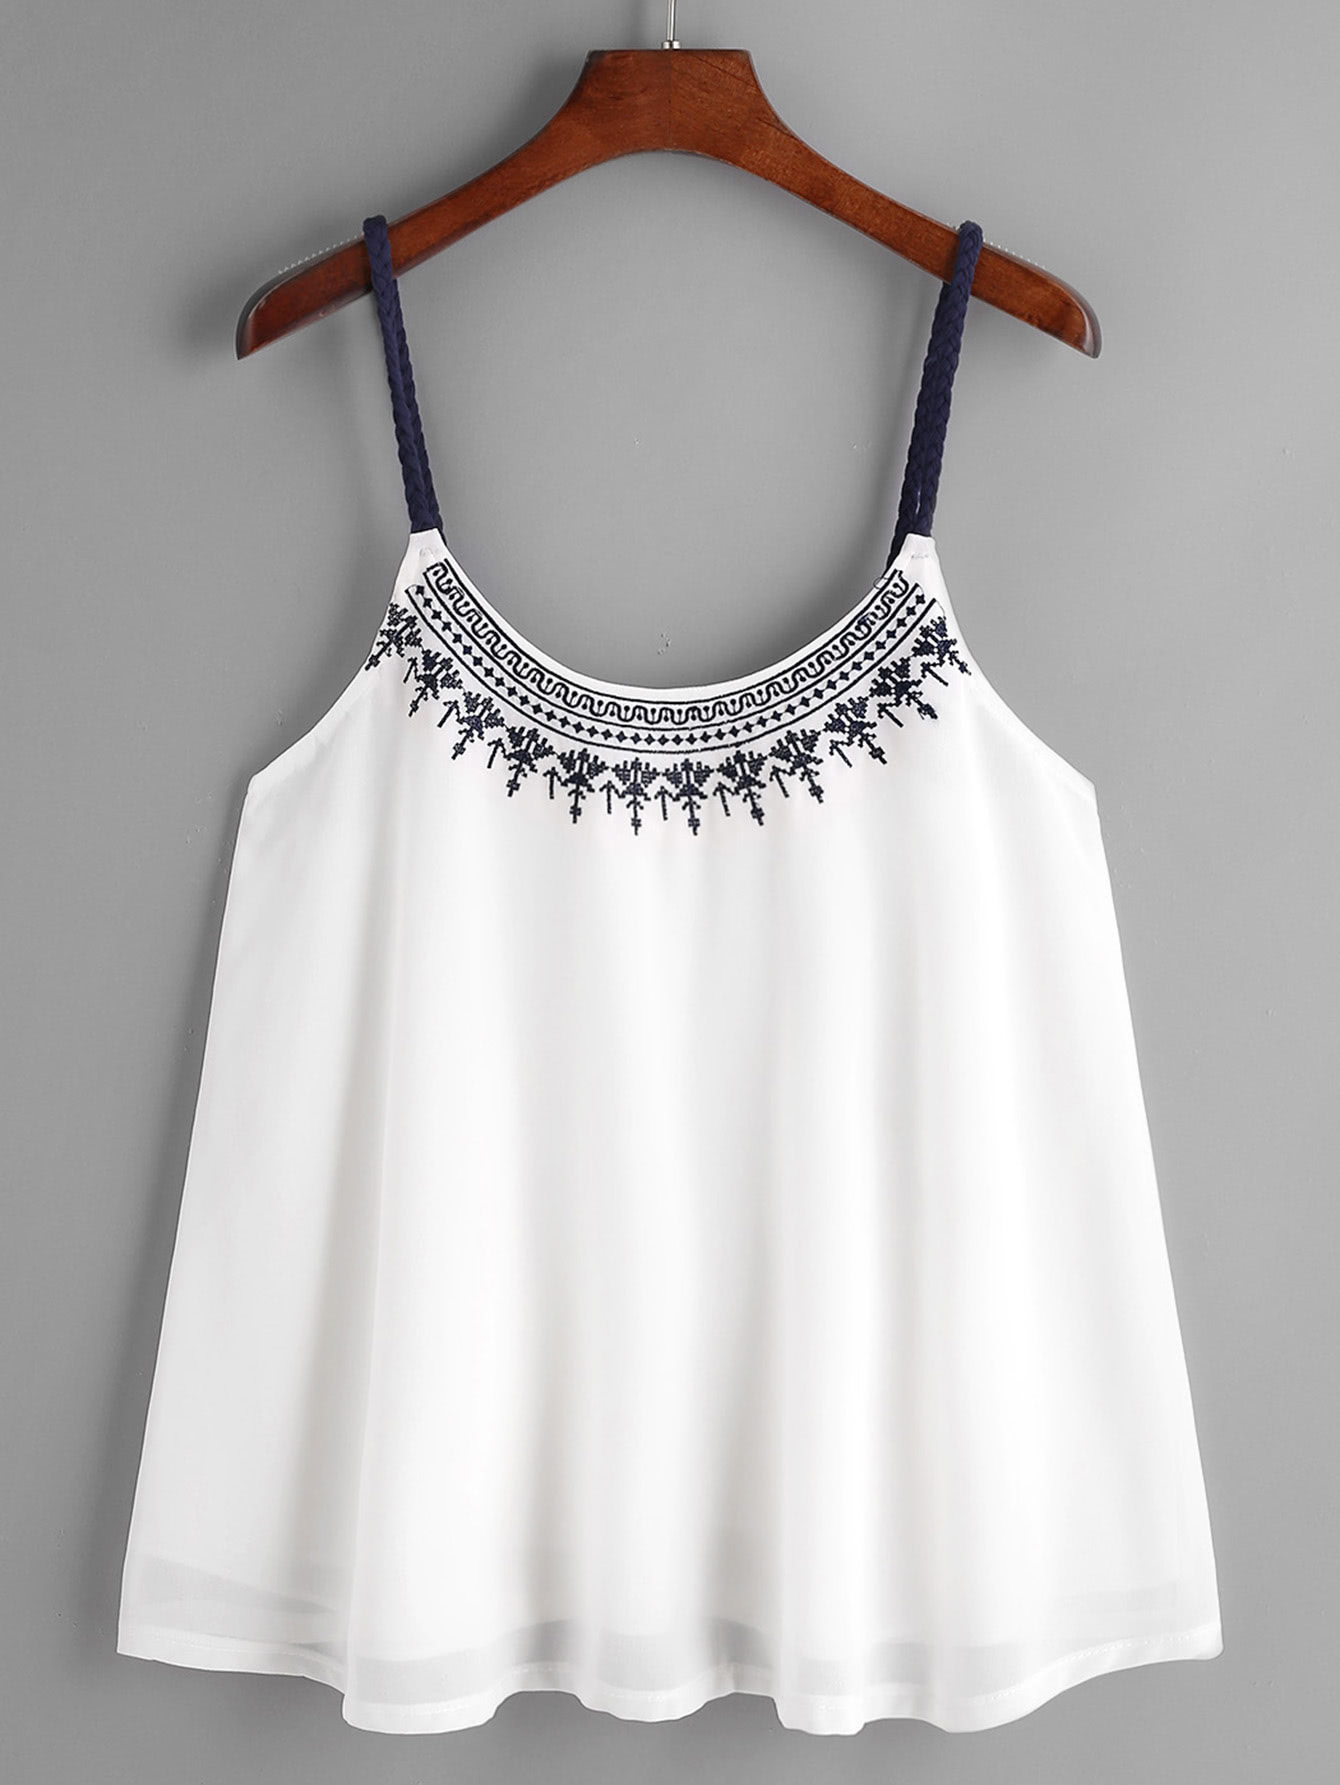 Embroidered Contrast Braided Strap Pleated Cami Top vest170317003